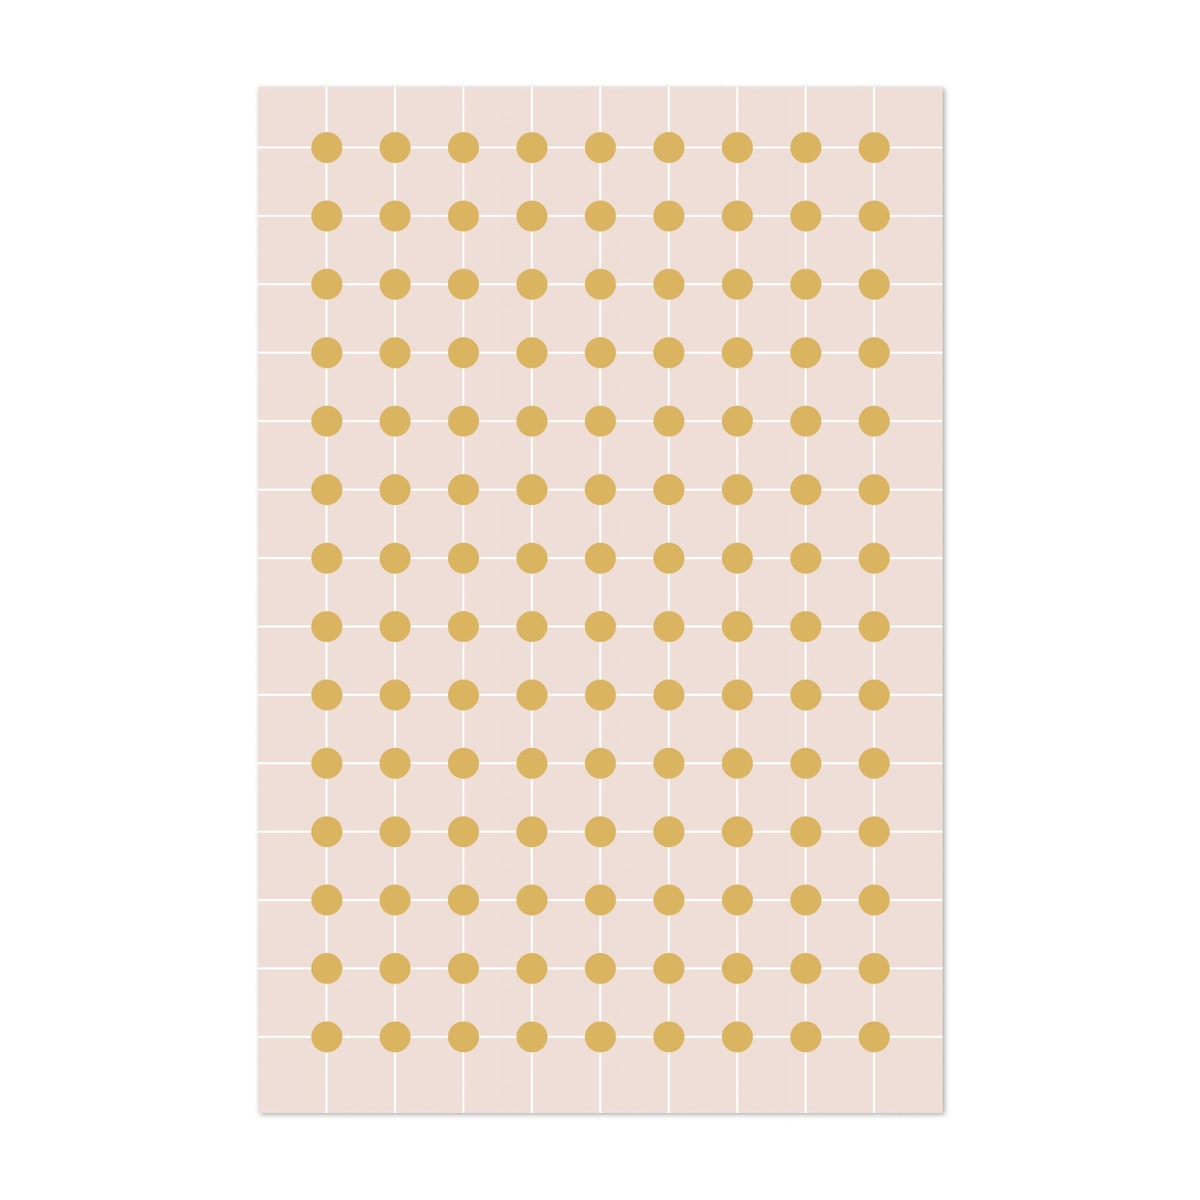 Dotted Grid in Gold